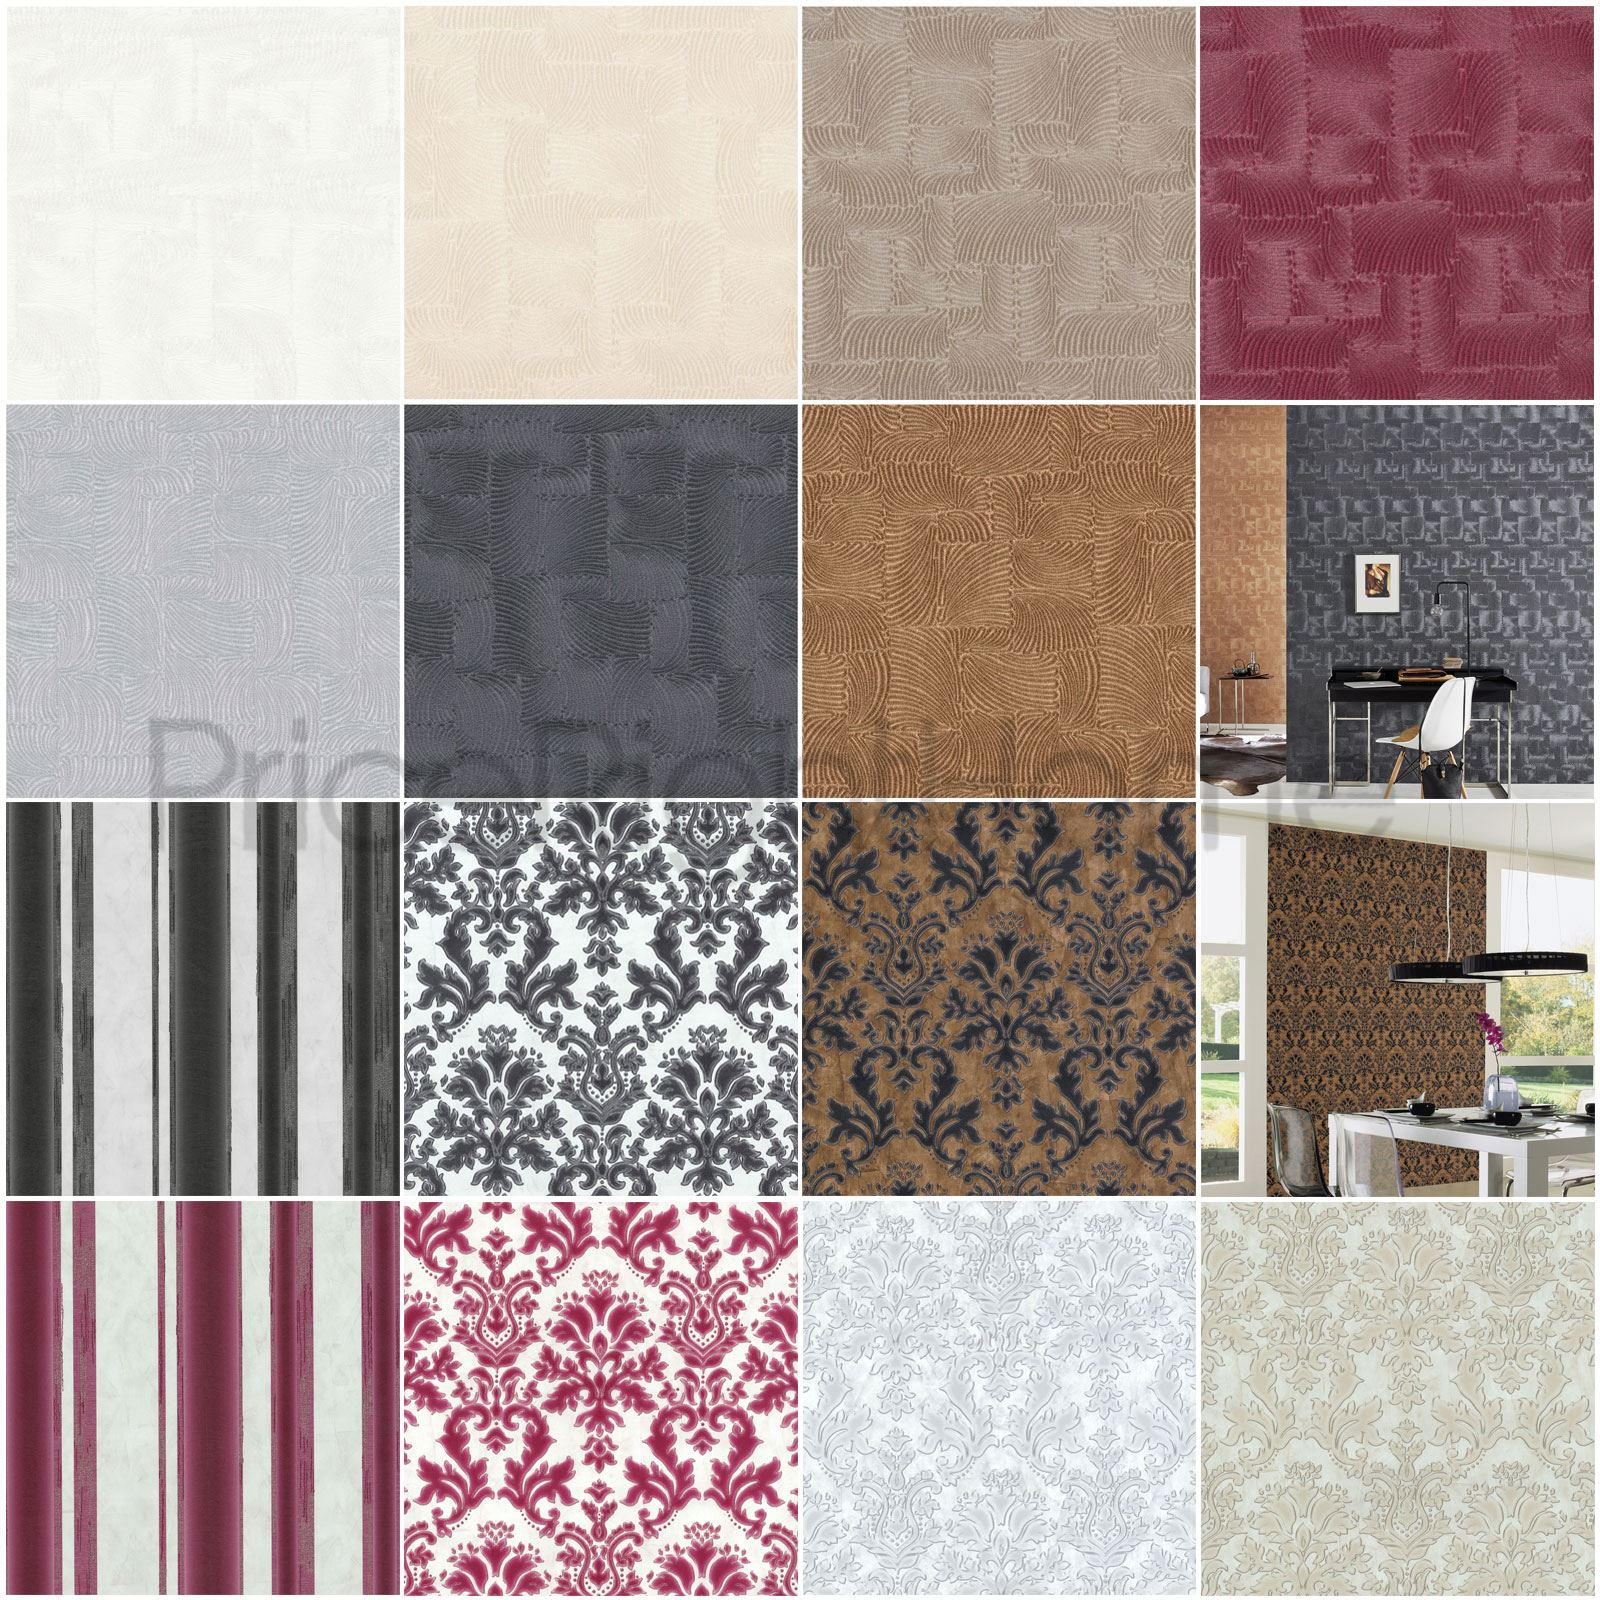 Au Naturelle Vinyl Wallcovering: P&S TEXTURED VINYL DAMASK / STRIPE / FOSSIL WALLPAPER